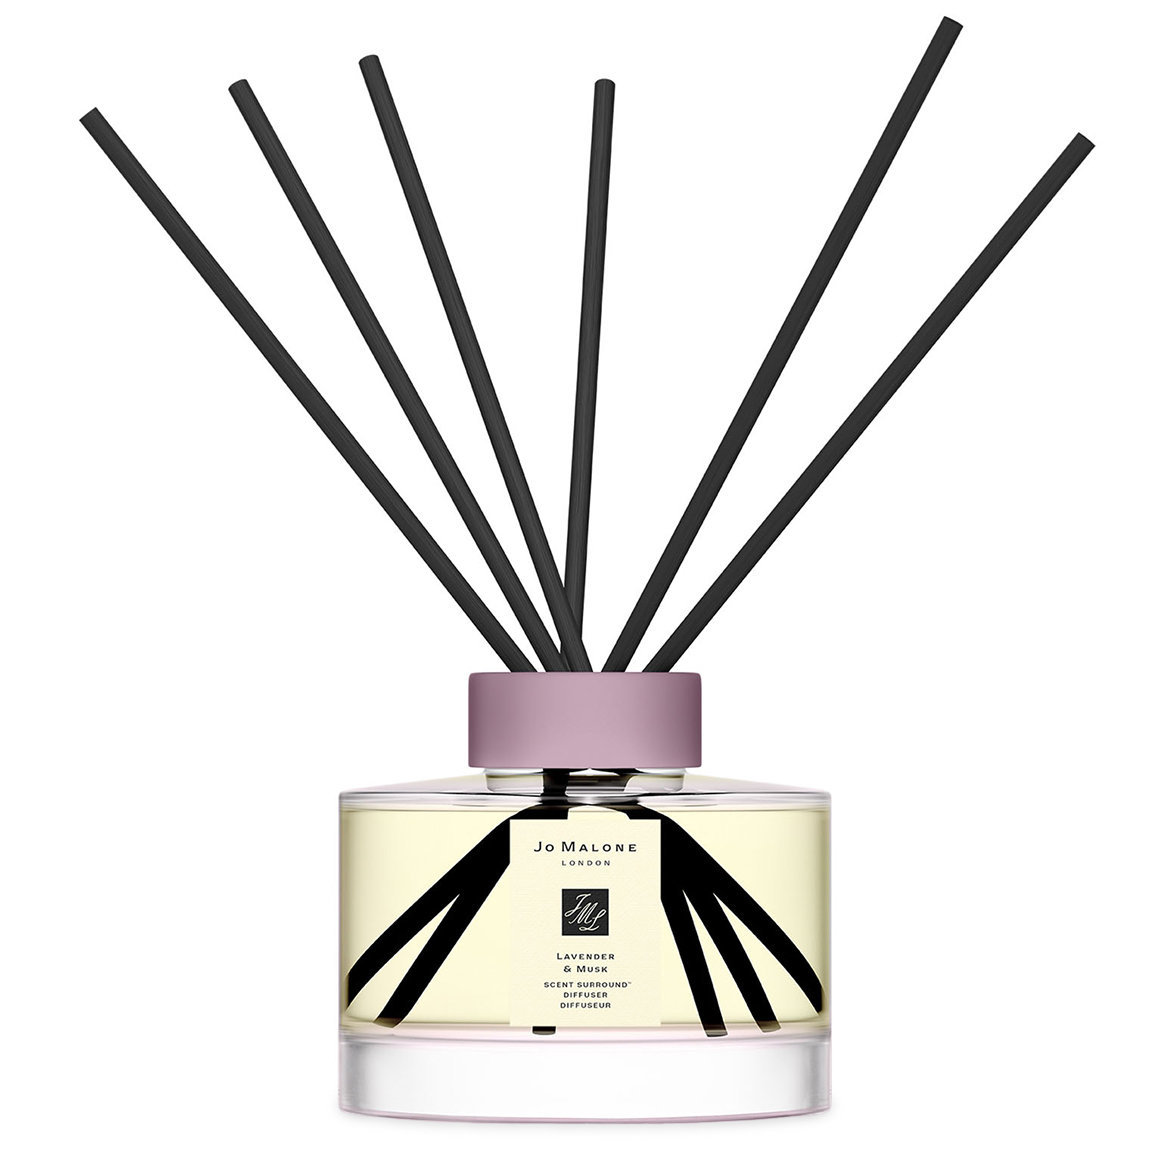 Jo Malone London Lavender & Musk Diffuser product swatch.